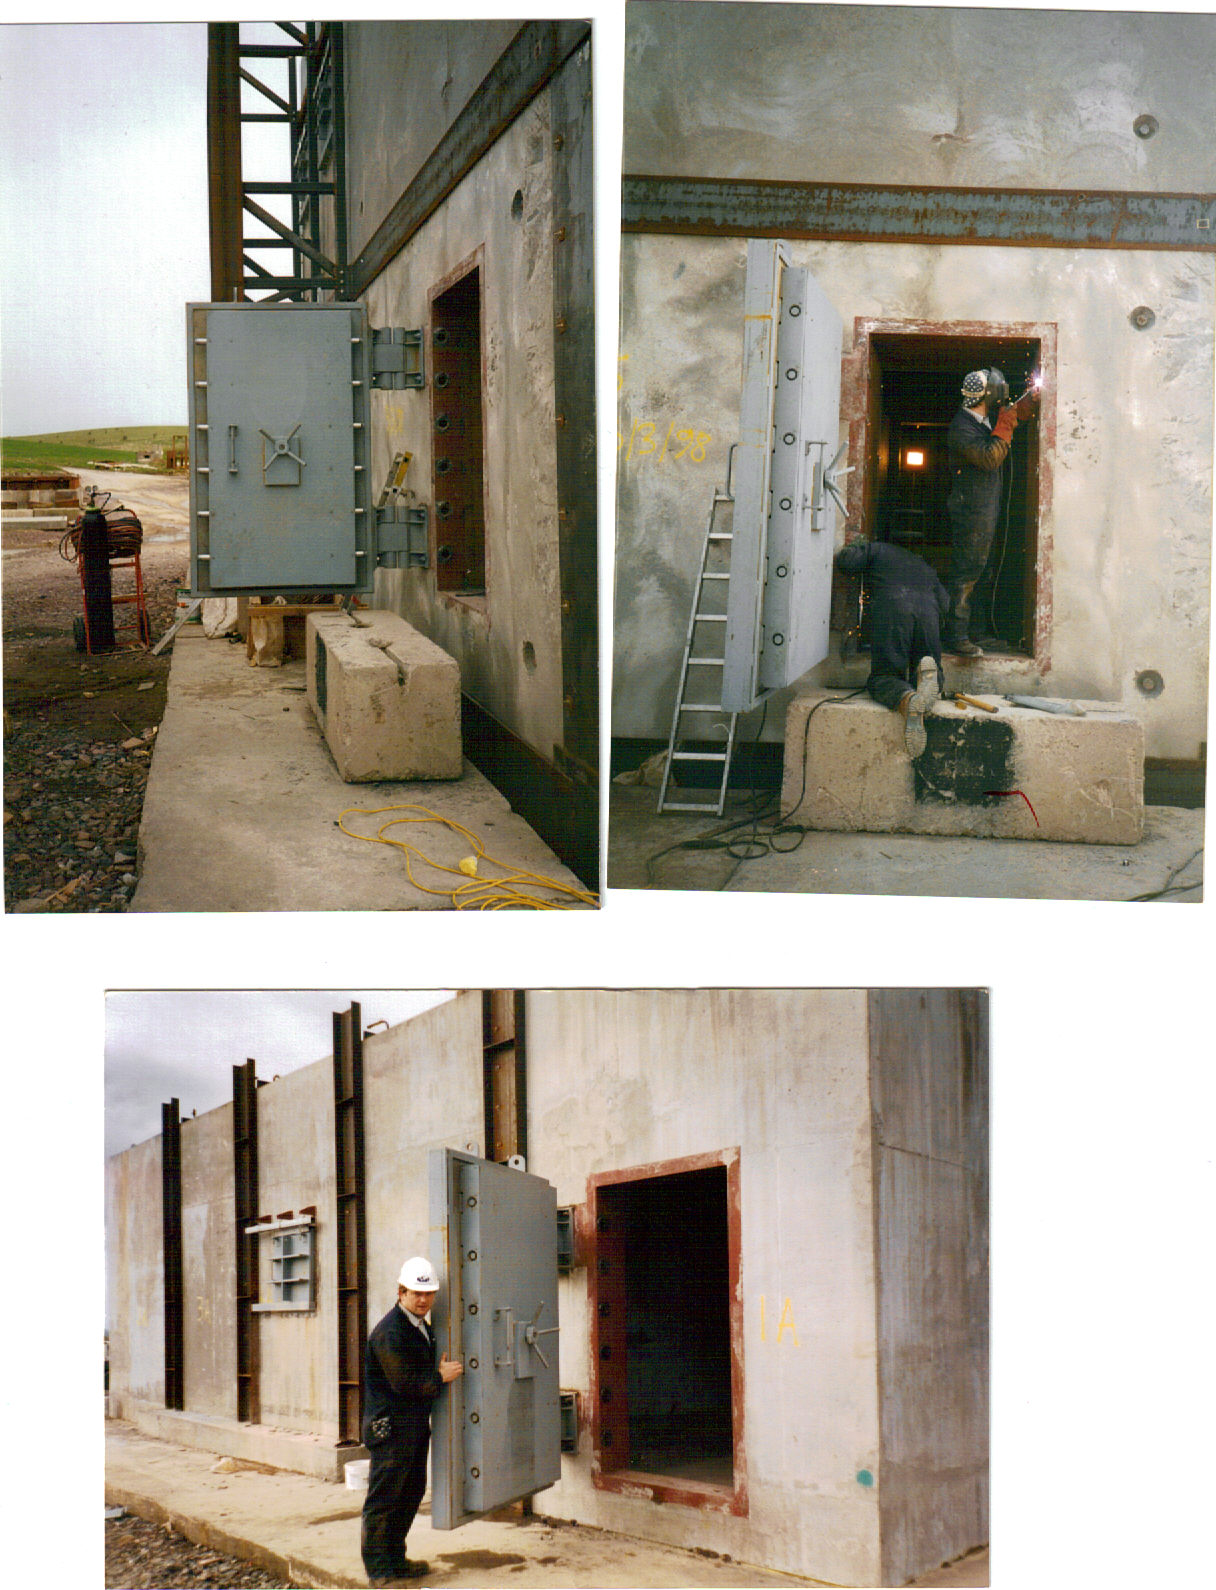 Blast doors being fitted to a building to prevent  harm to individuals during a controlled demolition.